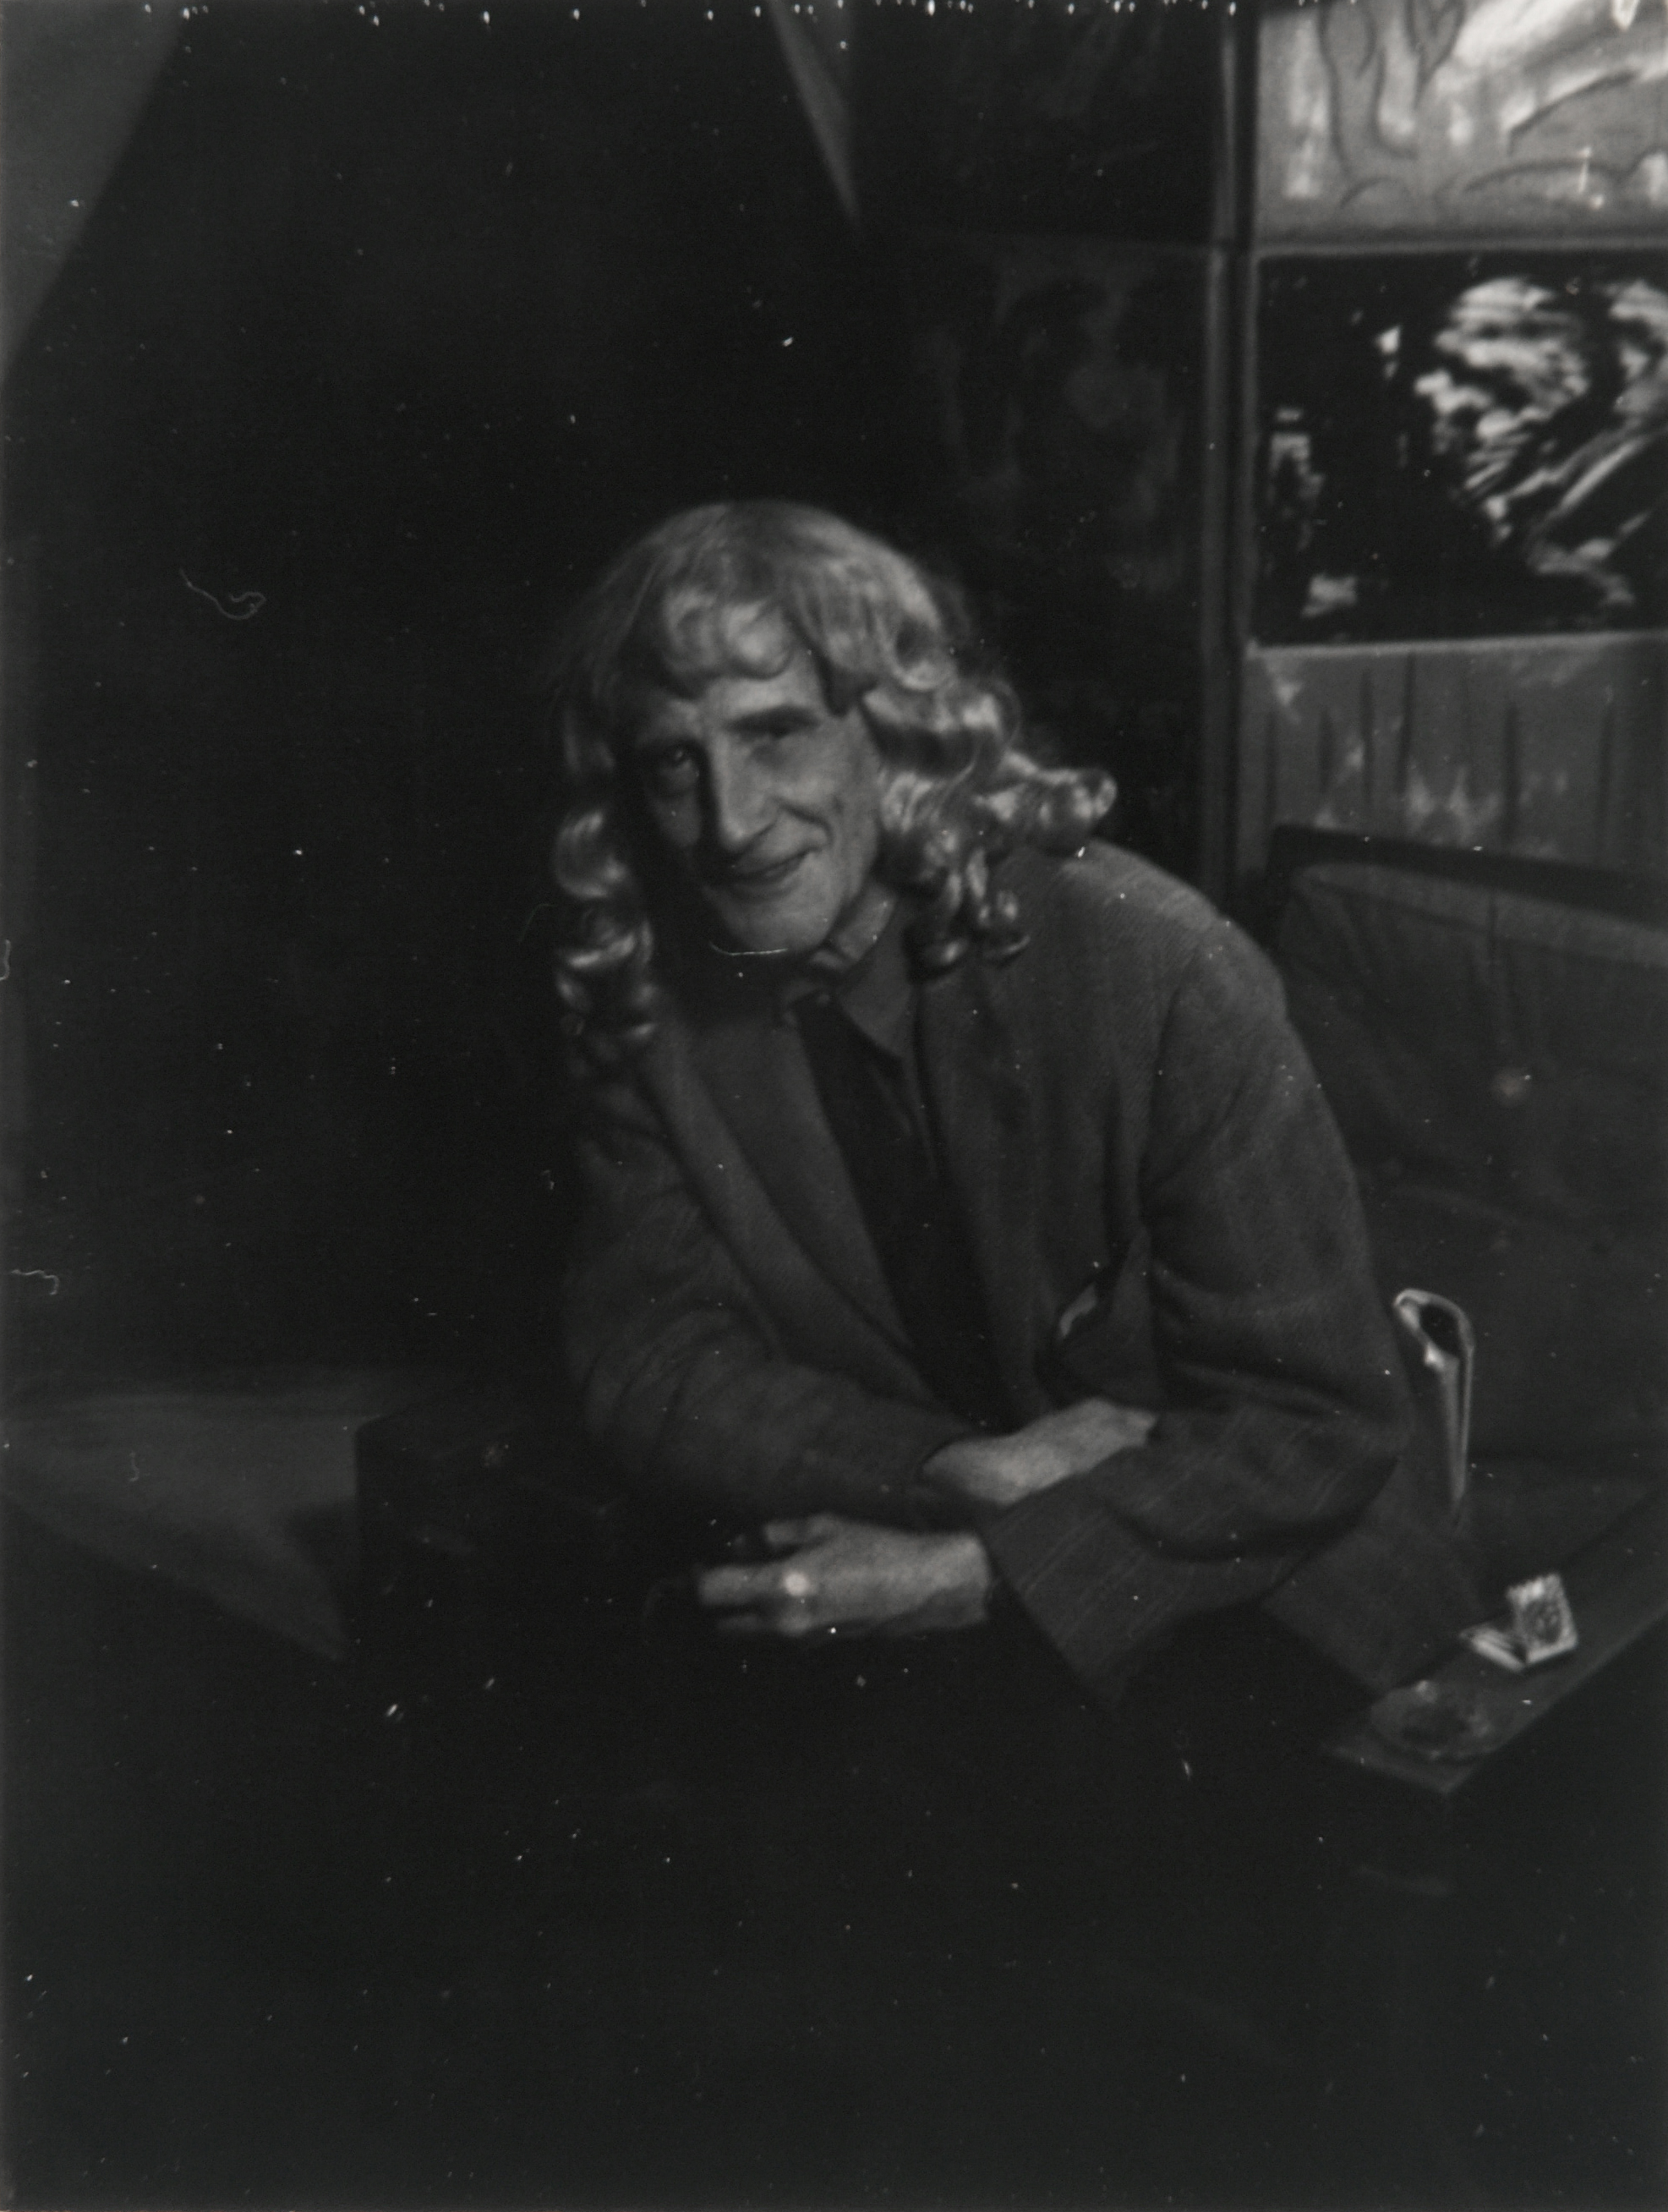 """matt james , 2013 On April 8, 2013, the artist and James Geier became friends. James lent the photograph Man Ray made with Marcel Duchamp, to the artist.   Man Ray  Polaroid Photograph of Marcel Duchamp in Blond Wig , c. 1950s 15.5"""" x 12.75"""" framed. 3.5"""" x 2.5"""" unframed. Collection Mr. and Mrs. James Geier, Chicago, IL"""